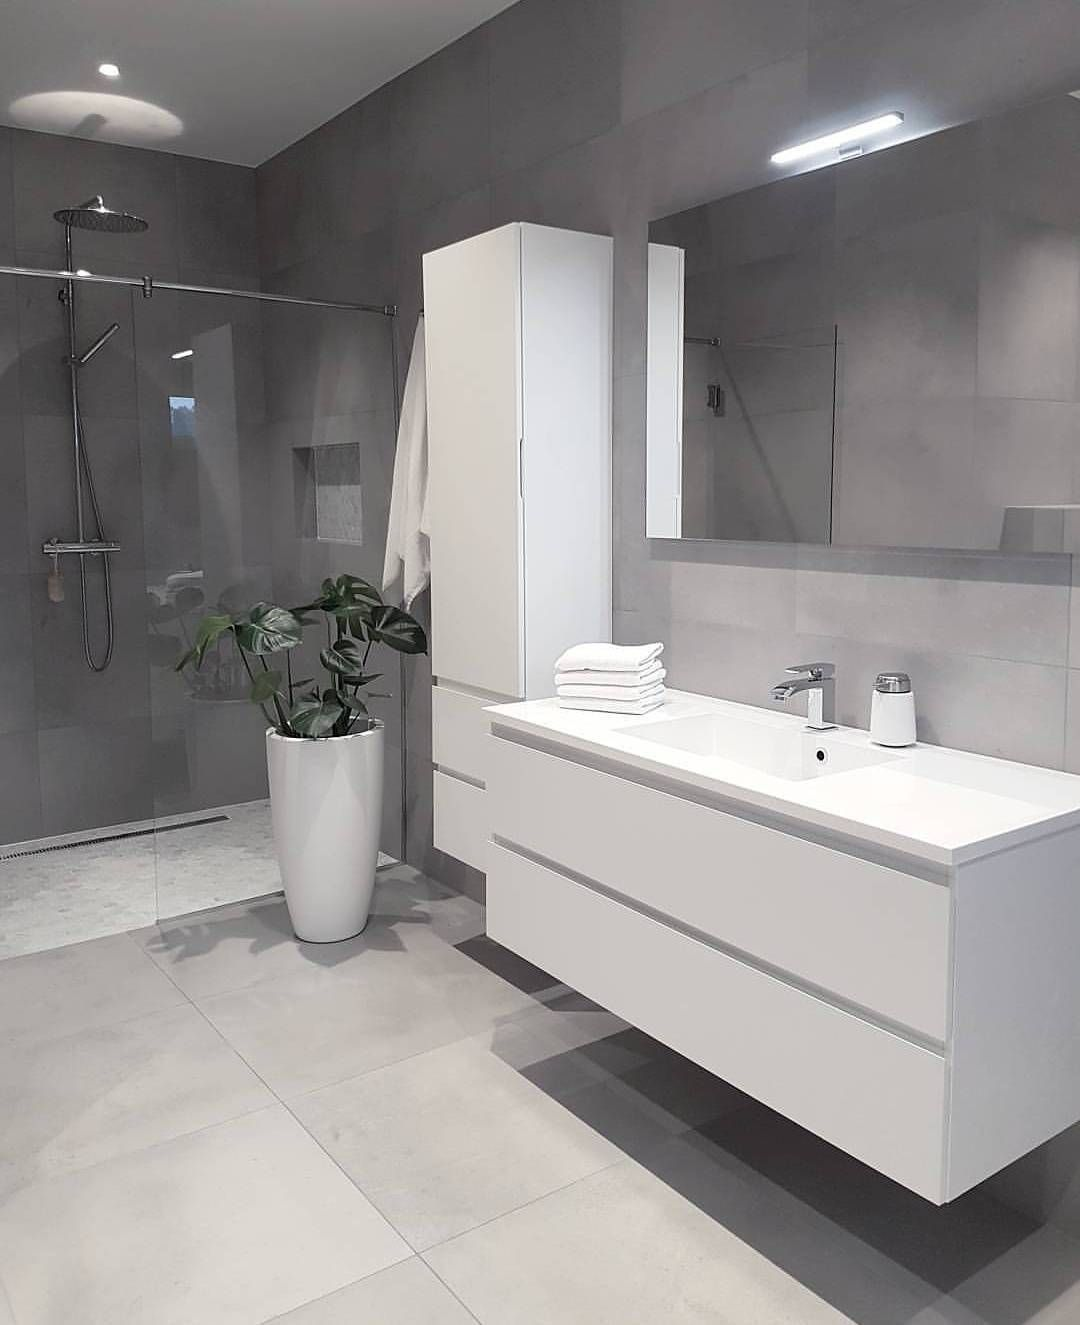 Pin by Jessy AH on Home | Pinterest | Bathroom designs, Bath and Tub ...